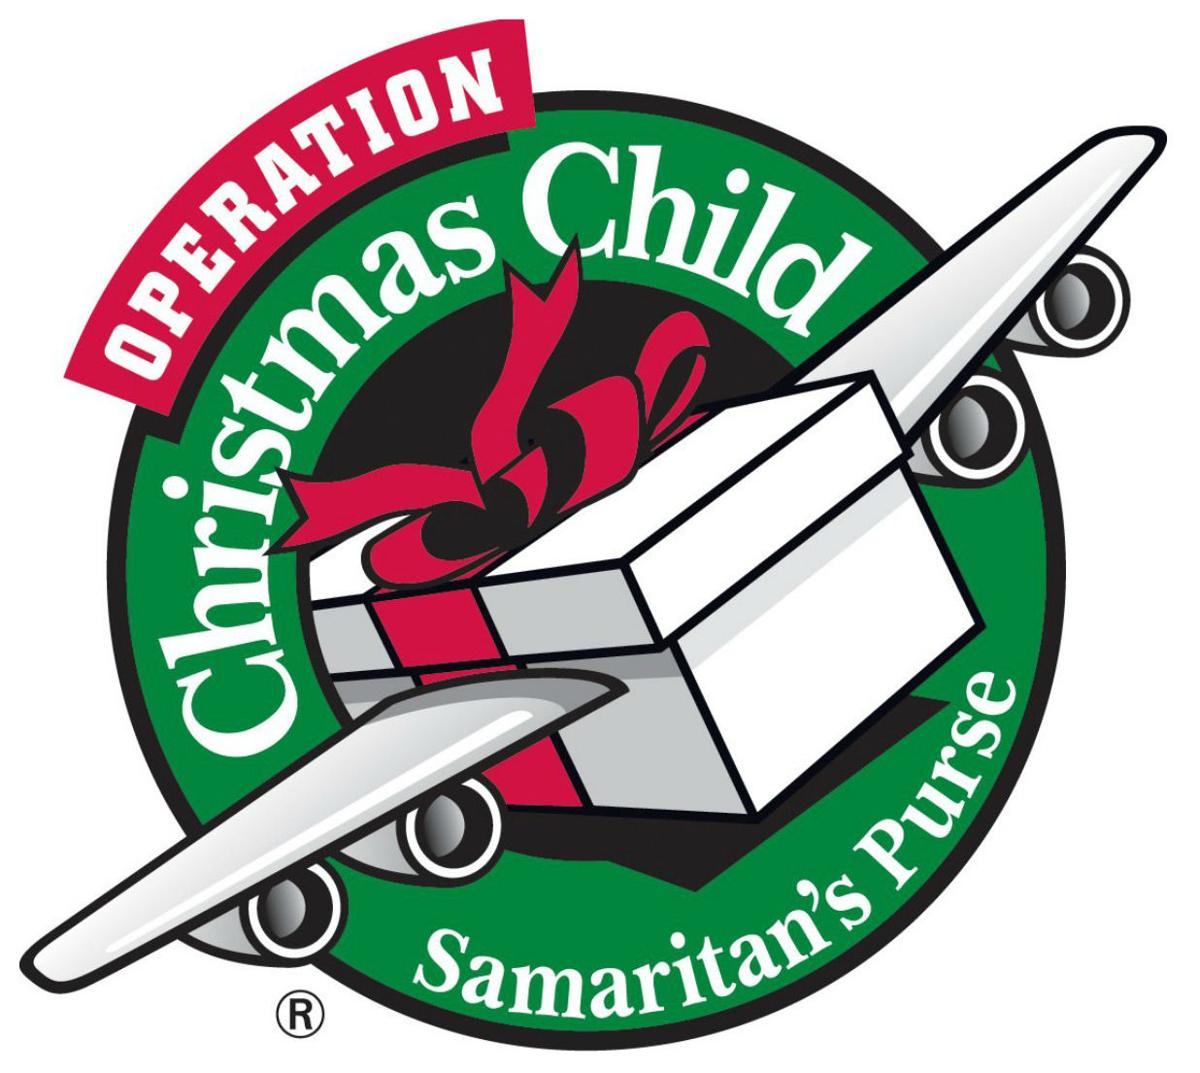 operation christmas child image